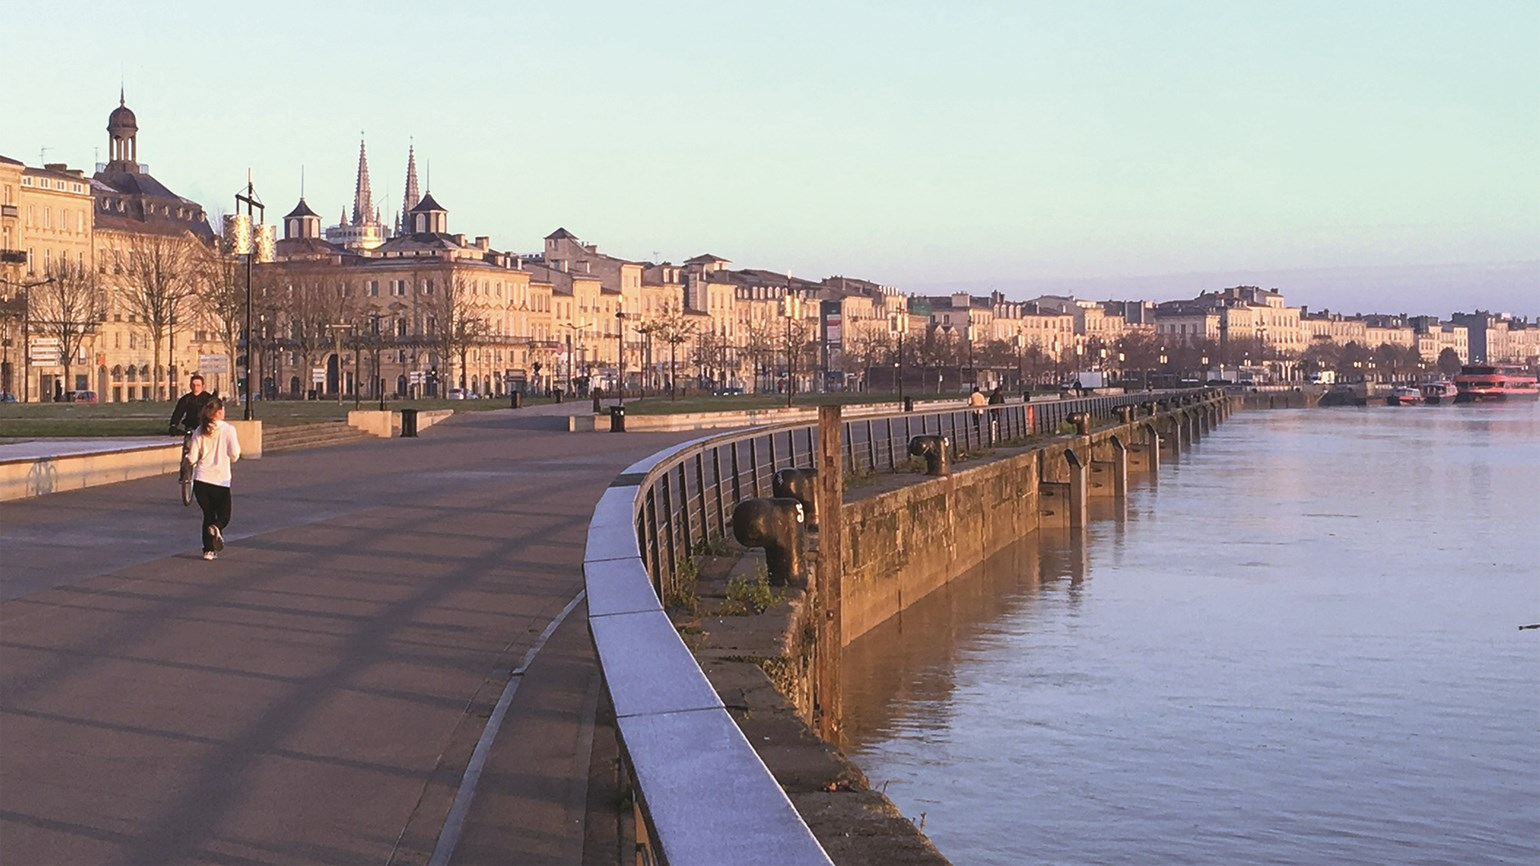 Bordeaux: Tourism's gold standard